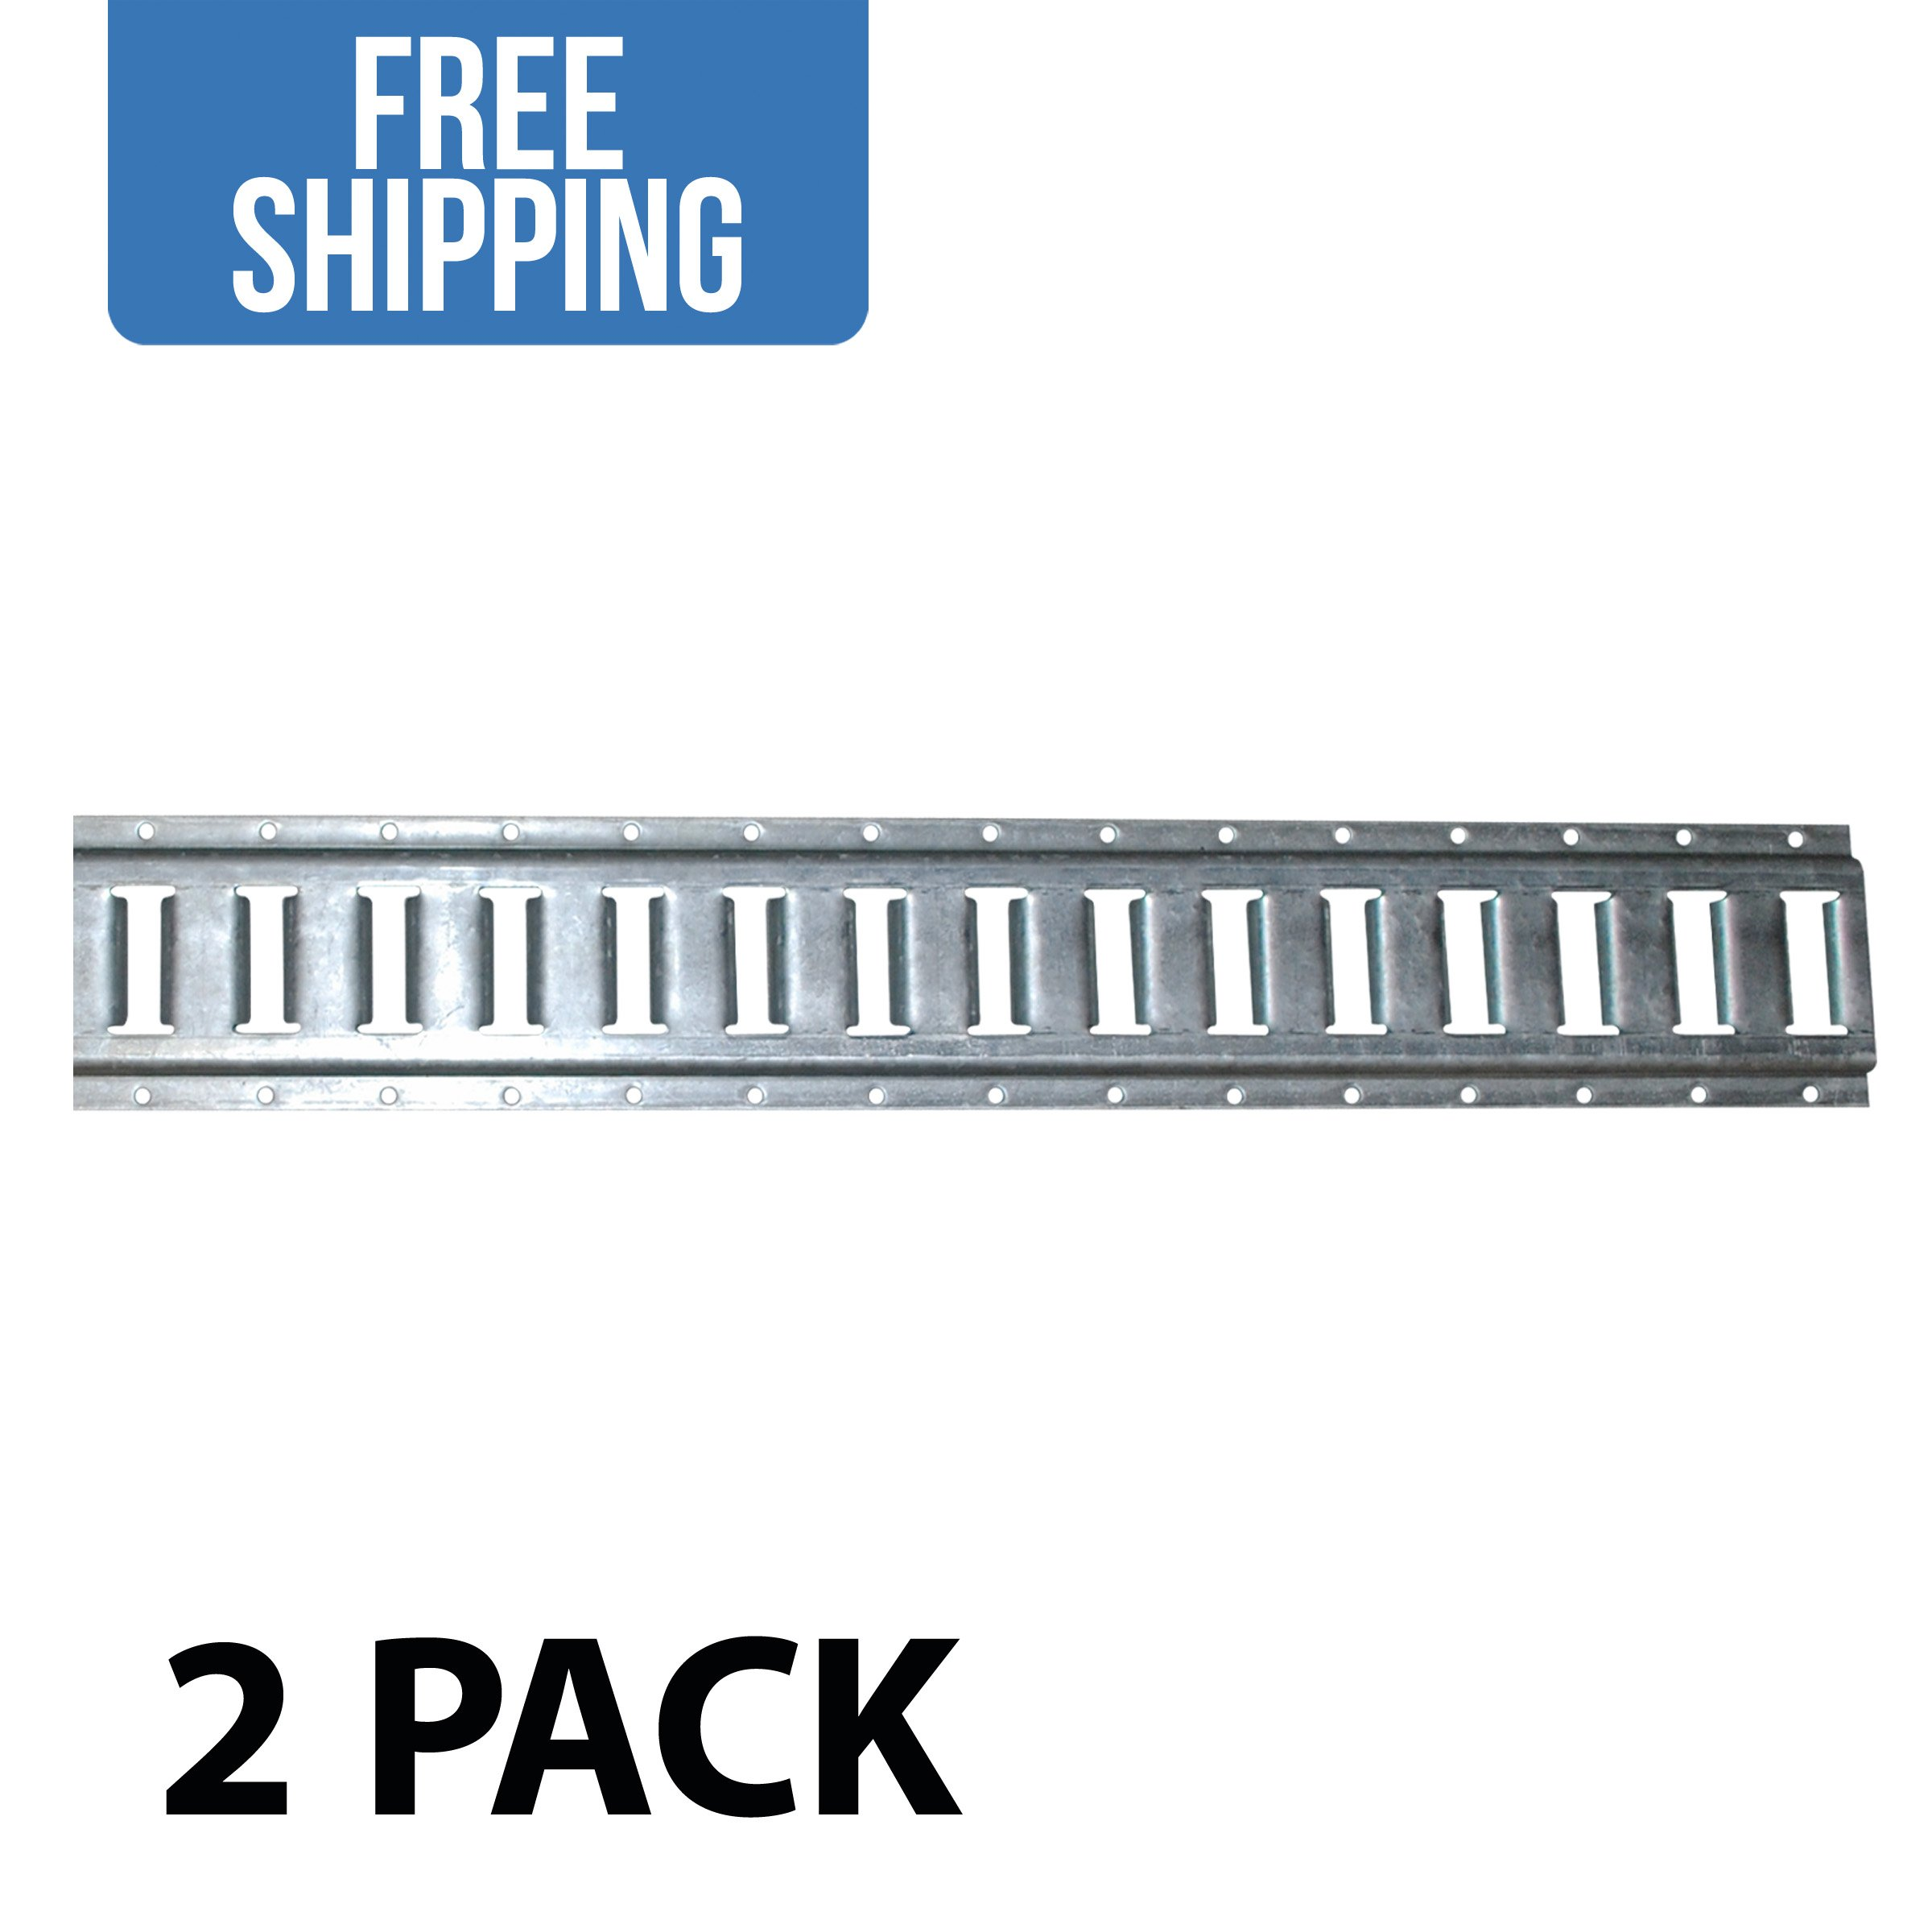 8' Horizontal E-Track - 2 PACK - Shippers Supplies - Tie Down Rail Made with 12 Gauge Galvanized Steel for Securing Cargo in Your Trailer, Van, Pickup Truck and More!